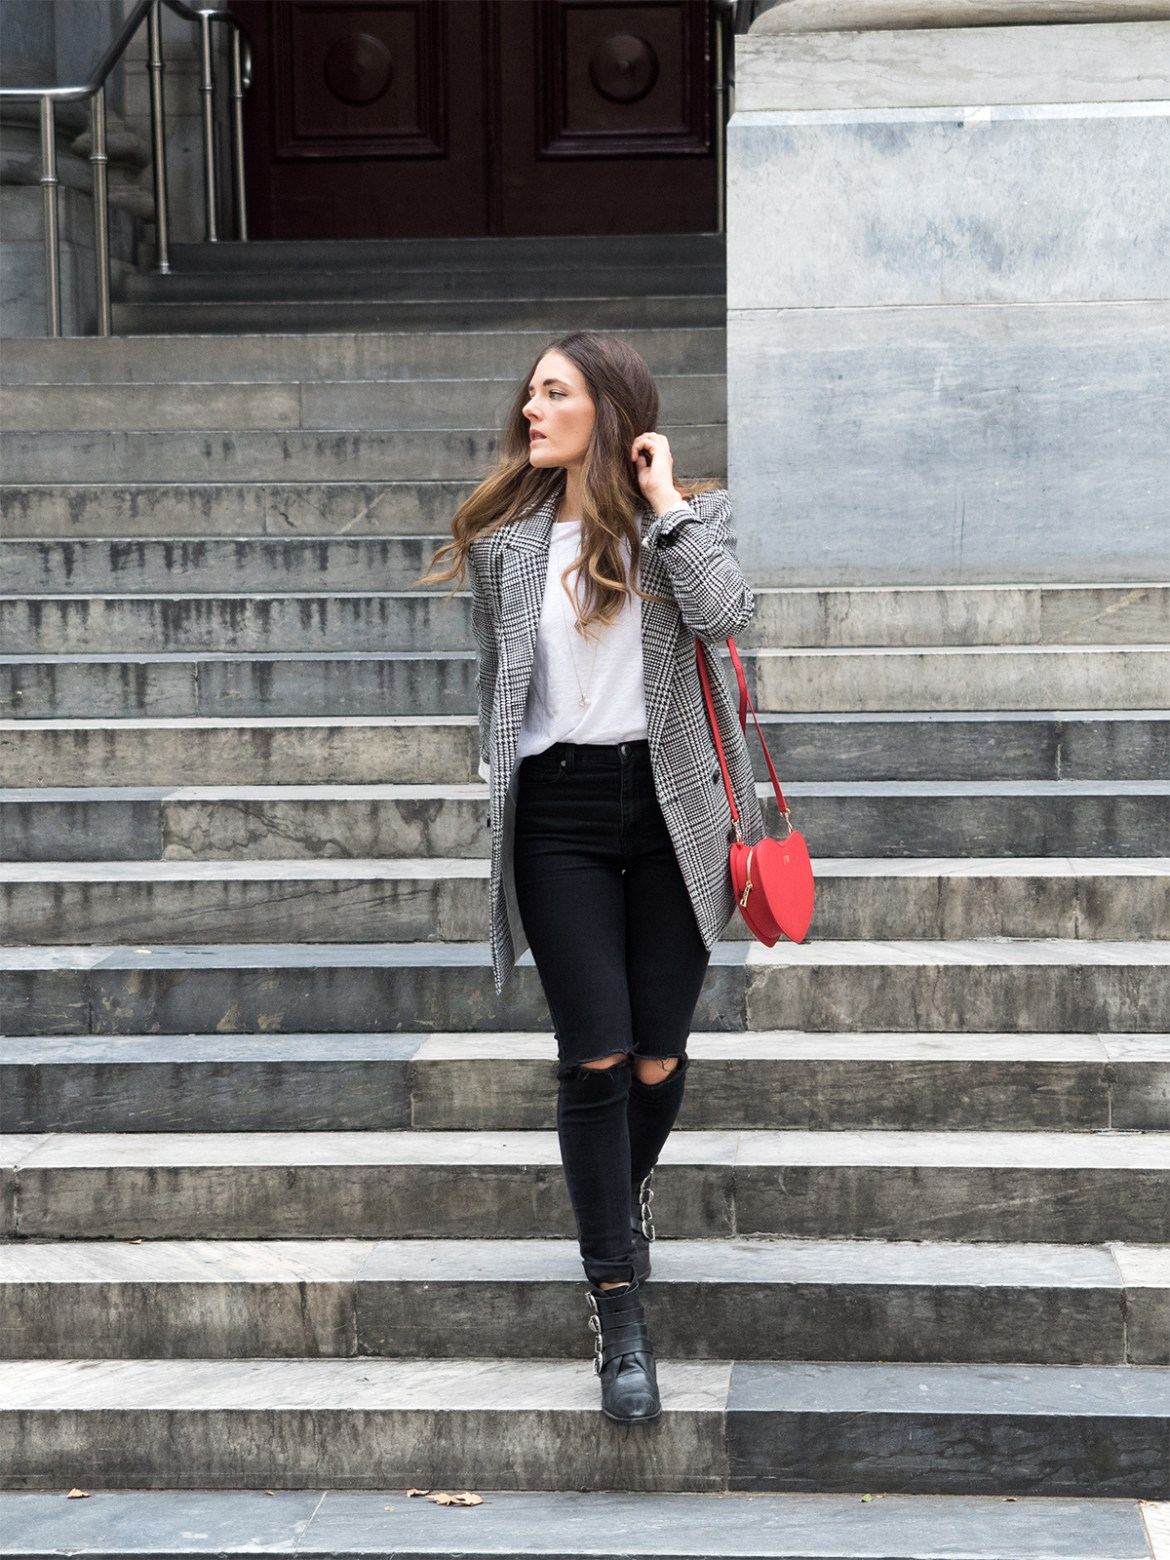 INSPIRING WIT STREET STYLE blogger in H&M check double breasted blazer, the daily edited heart handbag